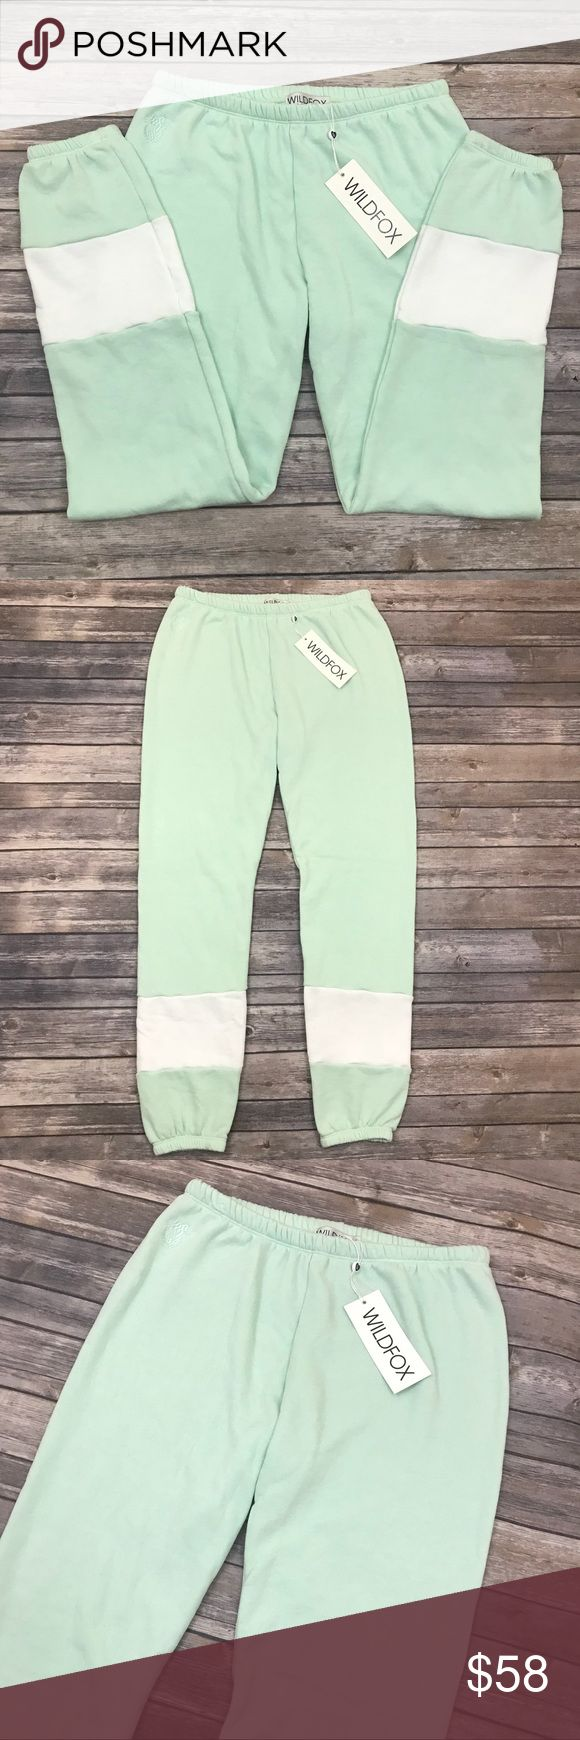 New Wildfox Seafoam Varsity Jogger Sweatpants Wildfox Seafoam Varsity White Label Jogger Sweatpants •New with tags •Size Large •Retails for $98  Check out my other listings- Nike, adidas, Michael Kors, Hunter Boots, Kate Spade, Miss Me, Rock Revival, Coach, Wildfox, Victoria's Slecret, PINK, True Religion, Ugg Australia, Free People and more! Wildfox Pants Track Pants & Joggers